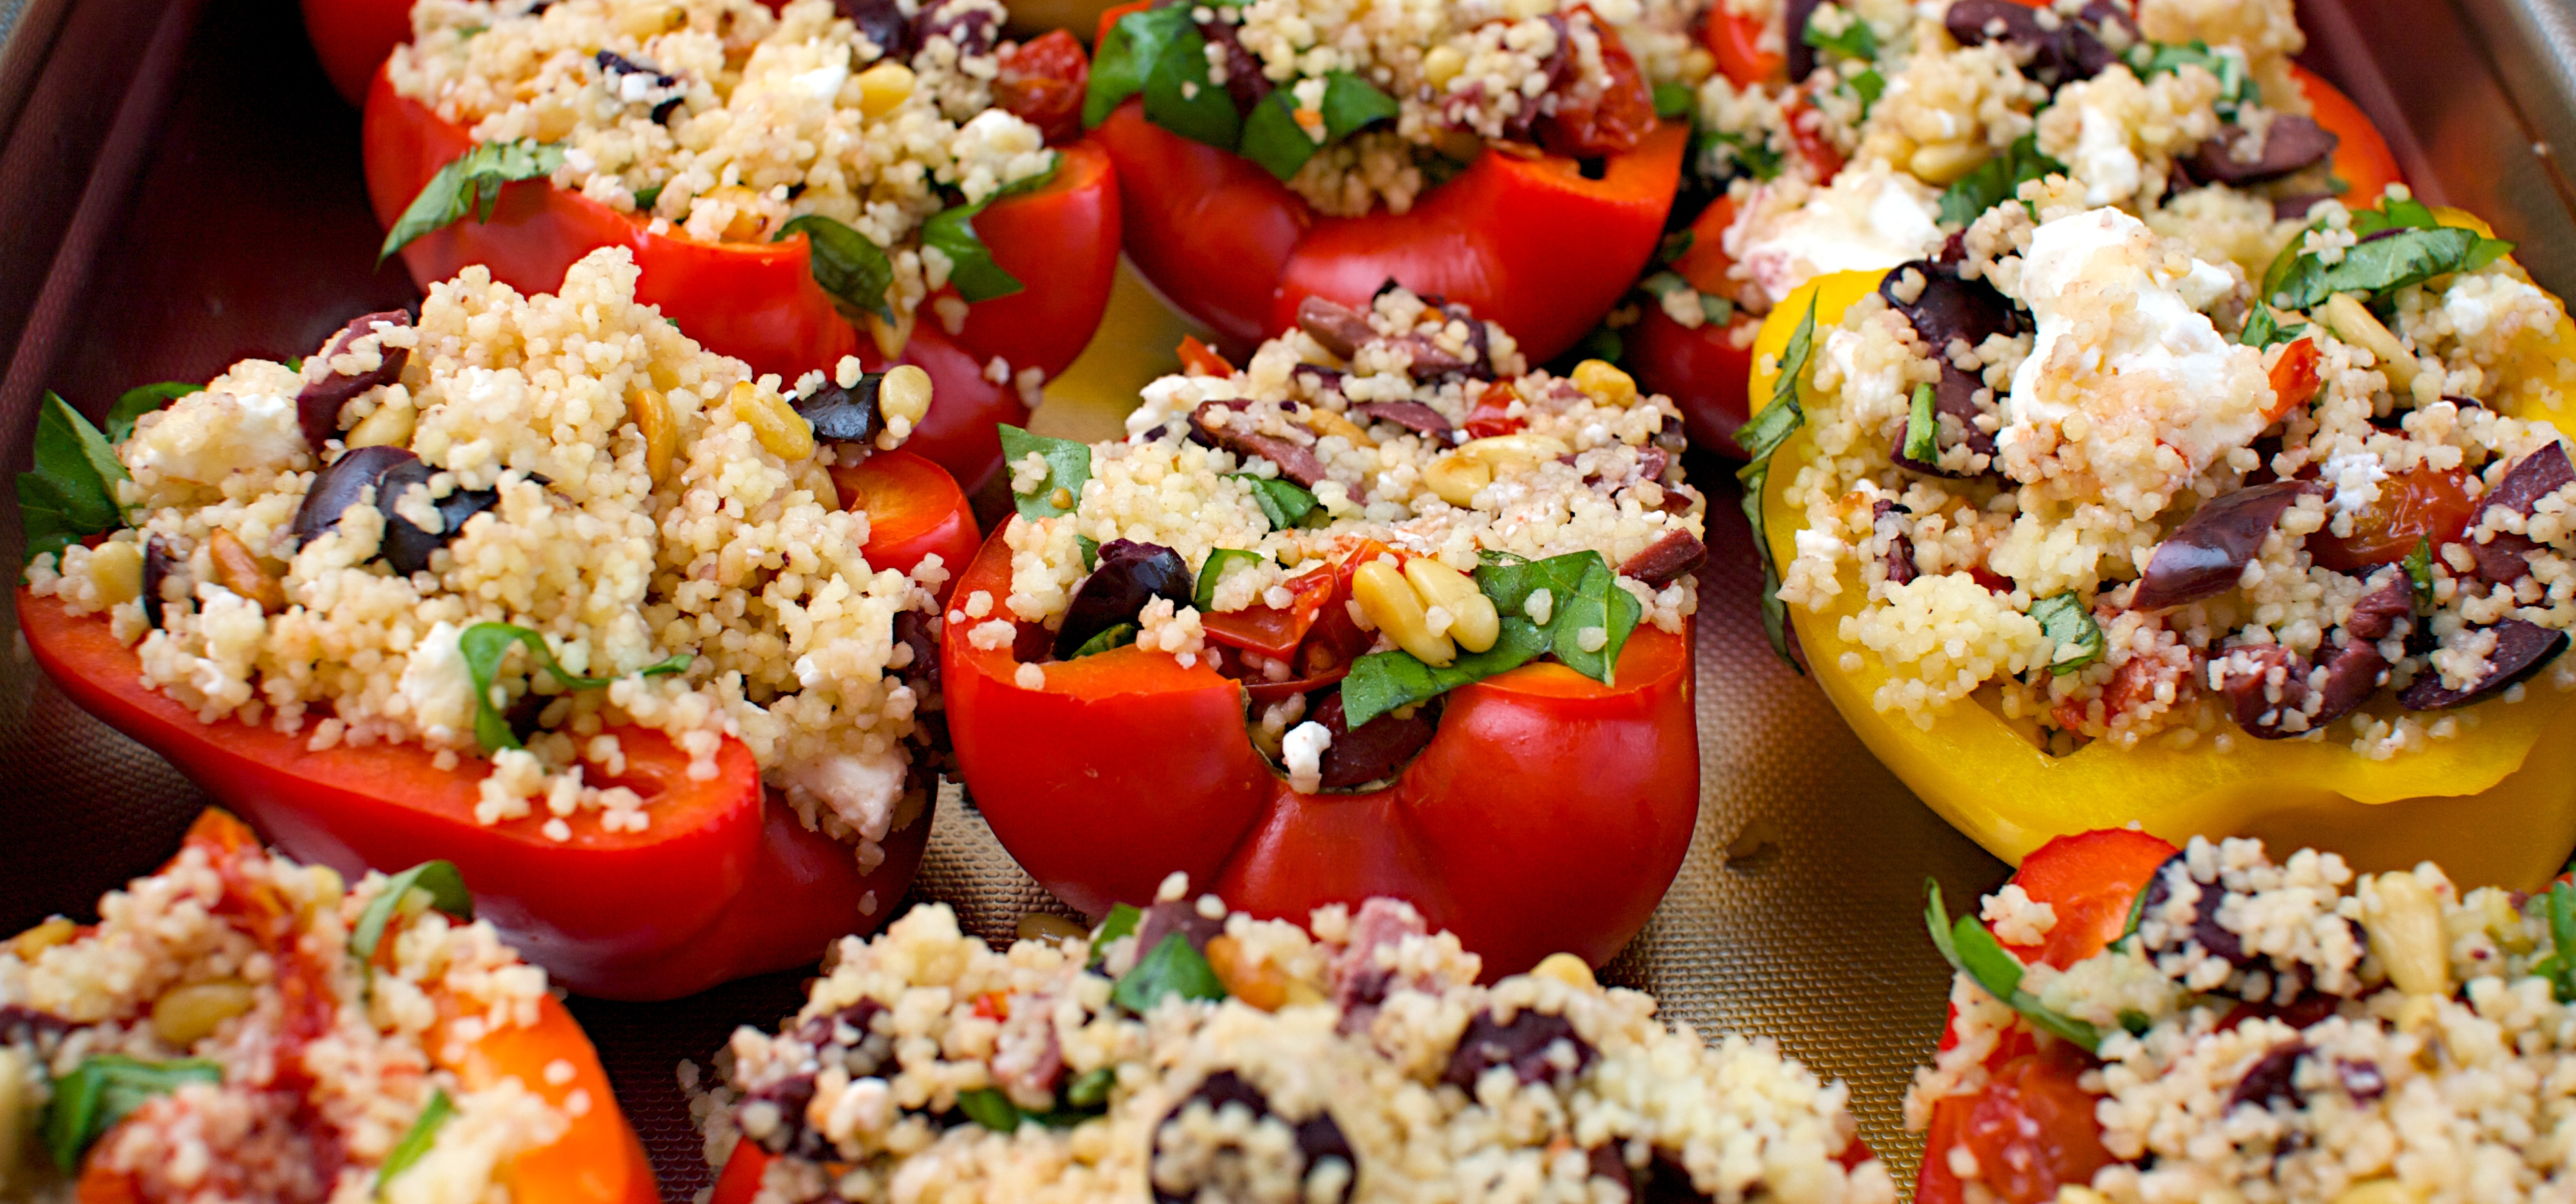 Discussion on this topic: Turkey and Quinoa Stuffed Peppers, turkey-and-quinoa-stuffed-peppers/